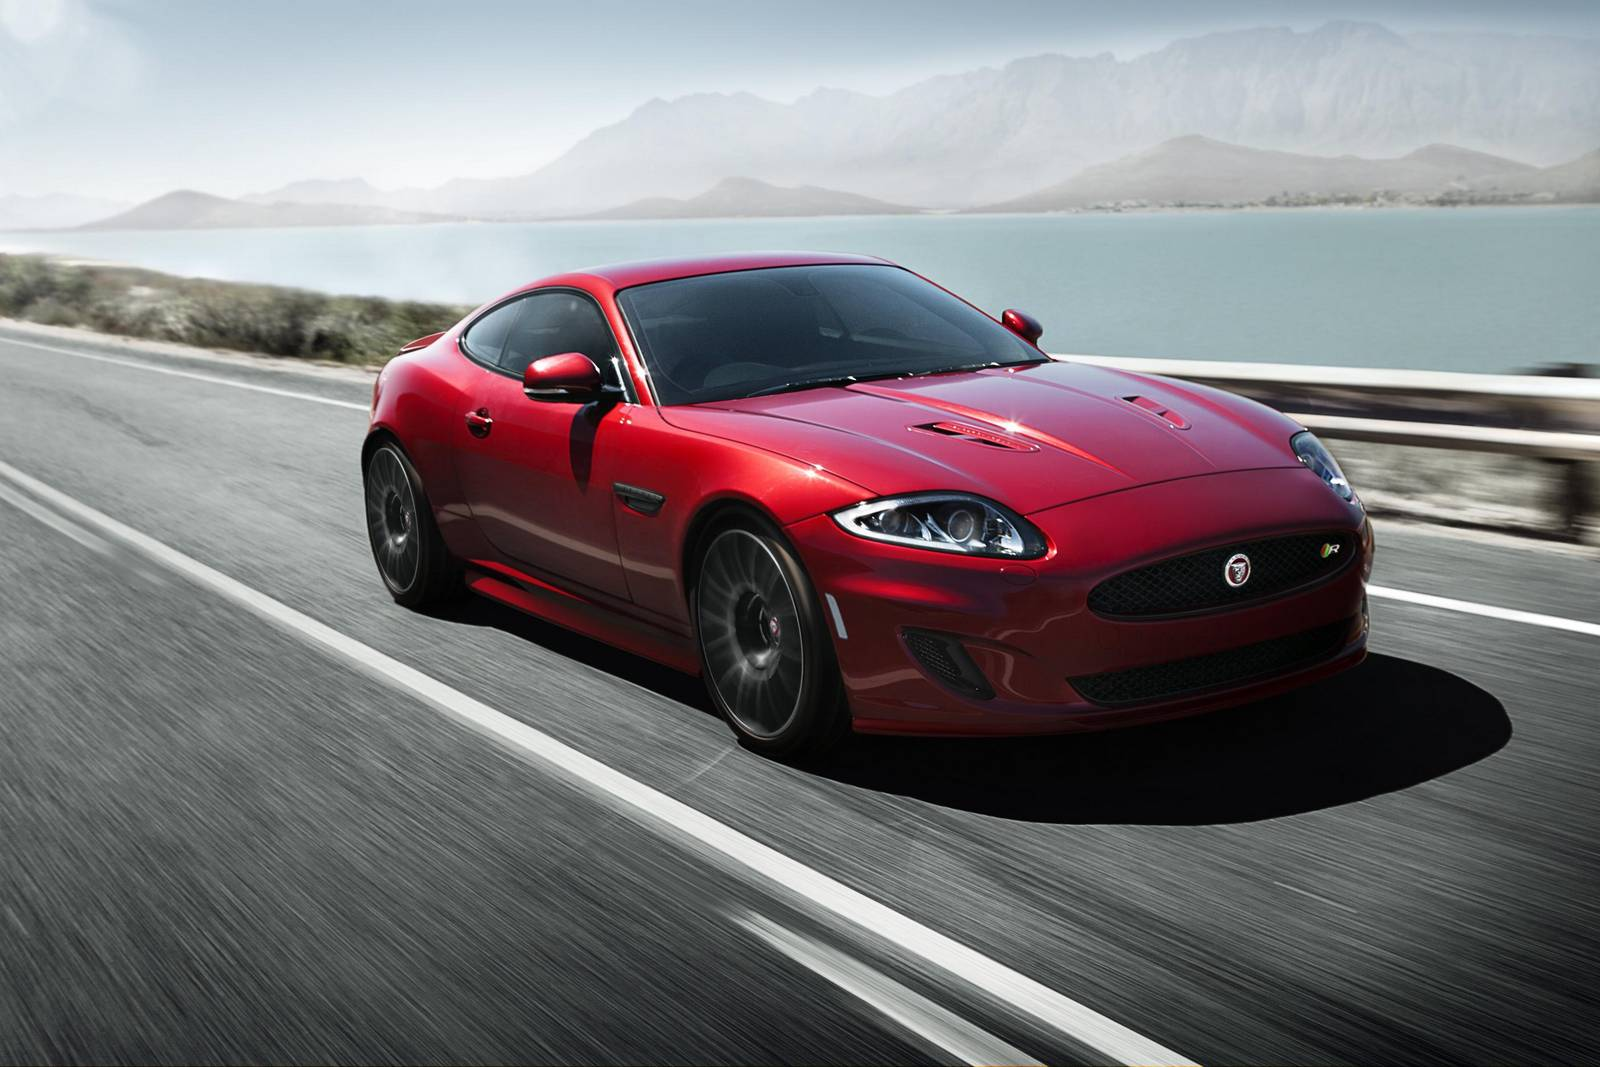 Superb Jaguar Has Just Taken The Wraps Off Two Special Edition Variants Of The Jaguar  XK Sports Car. Dubbed The Signature And Dynamic R, The Two Packages Are ...